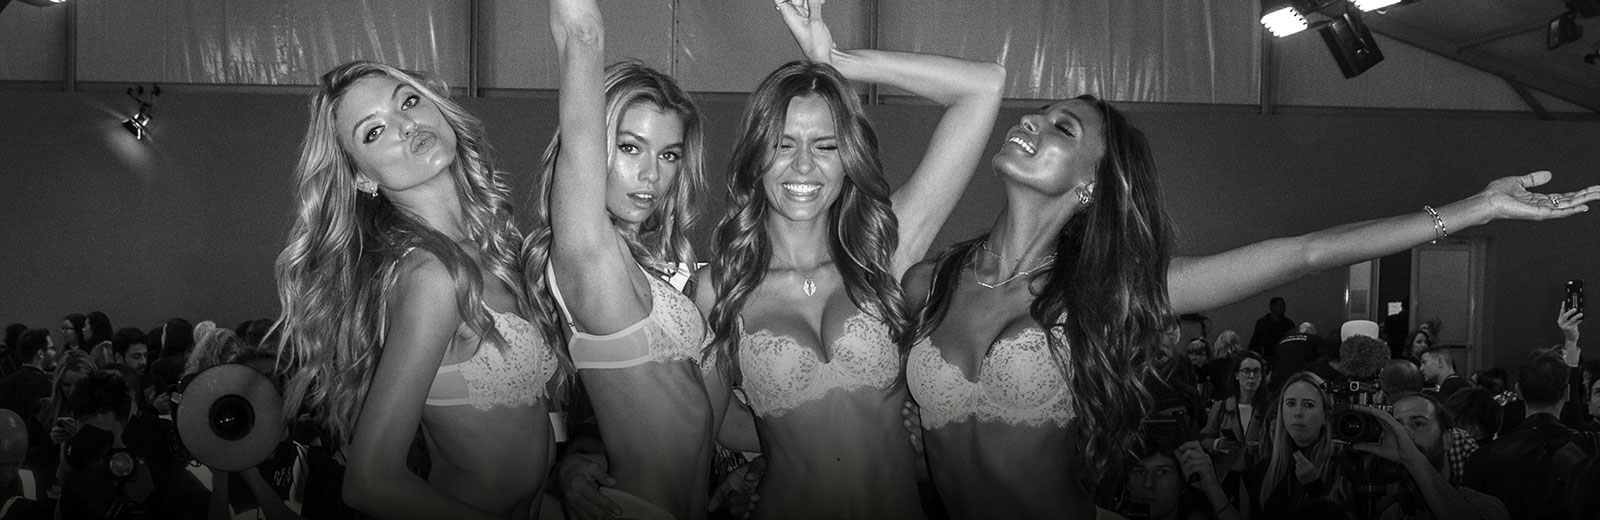 Russell James. A Decade Backstage at Victoria's Secret Fashion Show